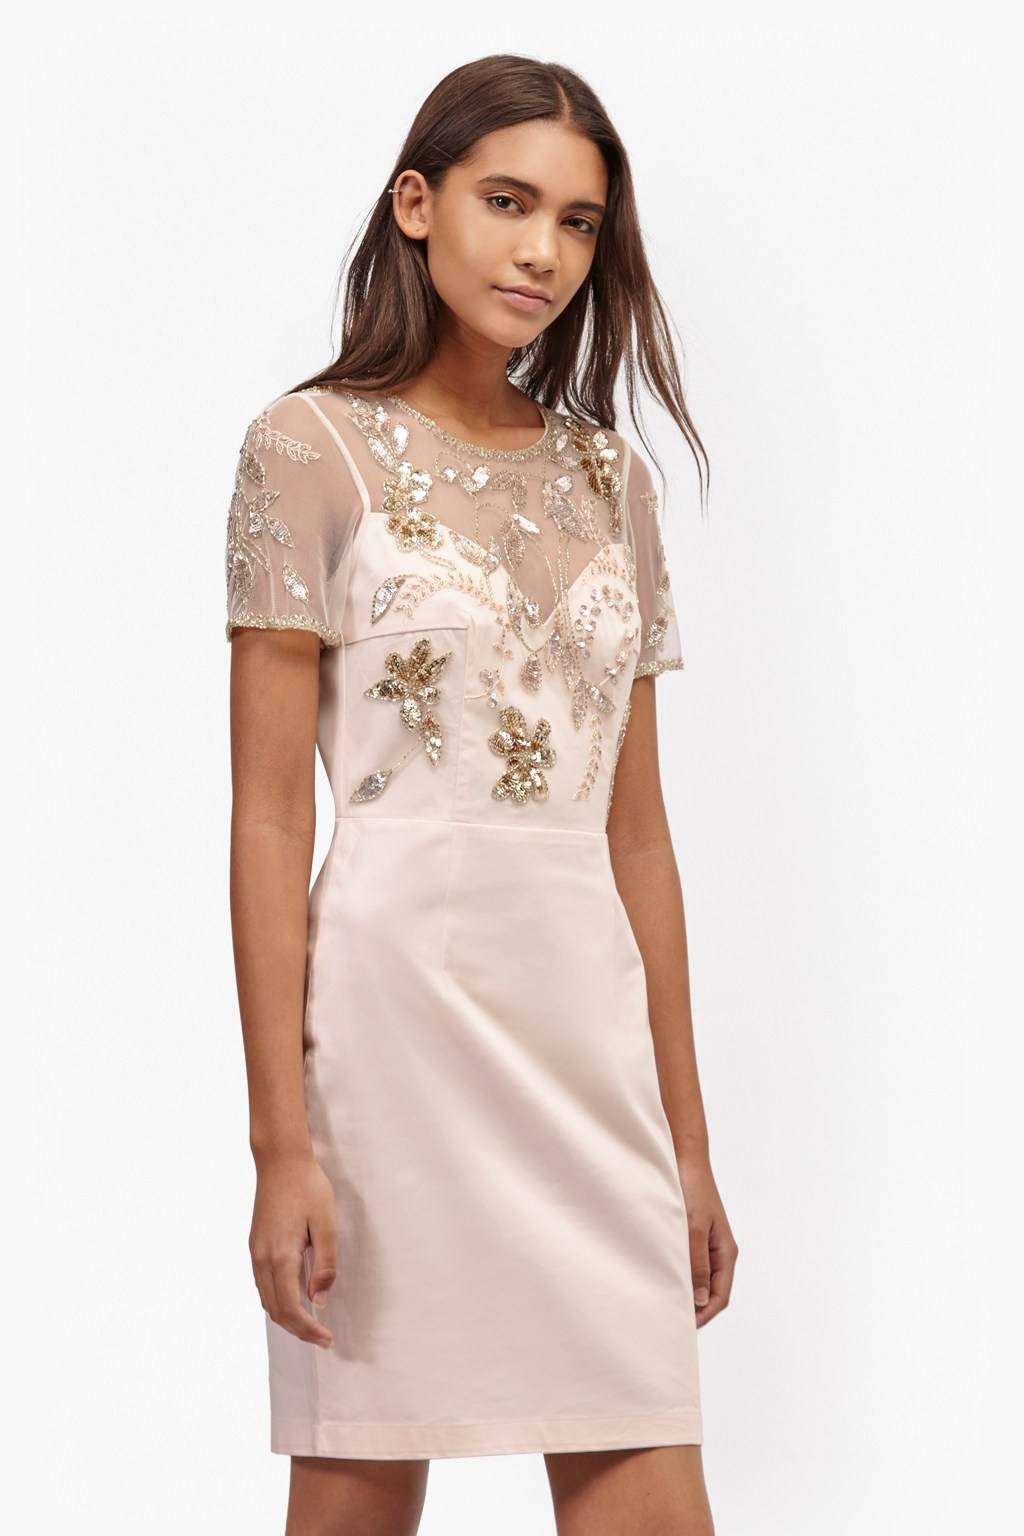 Horizon Light Embellished Dress Jasmine Pink - style: shift; length: mid thigh; neckline: round neck; fit: tailored/fitted; bust detail: added detail/embellishment at bust; predominant colour: blush; secondary colour: gold; occasions: evening, occasion; fibres: polyester/polyamide - 100%; sleeve length: short sleeve; sleeve style: standard; texture group: structured shiny - satin/tafetta/silk etc.; pattern type: fabric; pattern: patterned/print; embellishment: beading; shoulder detail: sheer at shoulder; season: s/s 2016